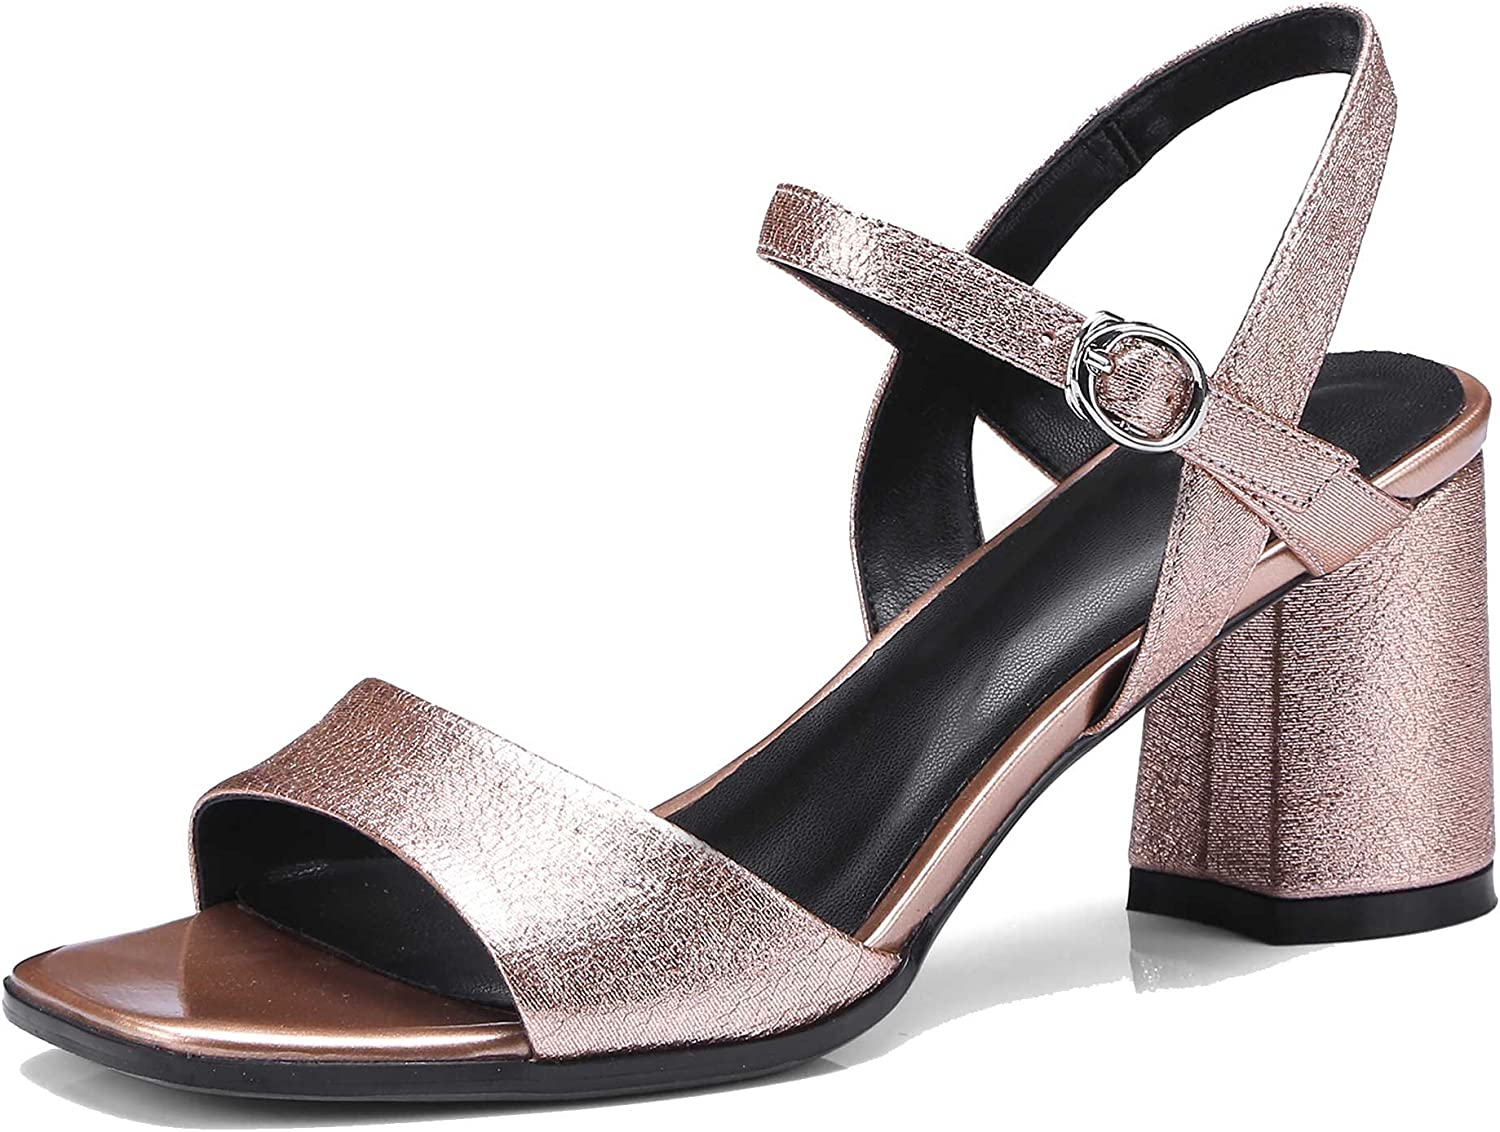 A-BUYBEA Women's Open-Toe 2.56  Middle Heeled Leather Sandal shoes Size 4-10 Champaign Gun-Metal Grey